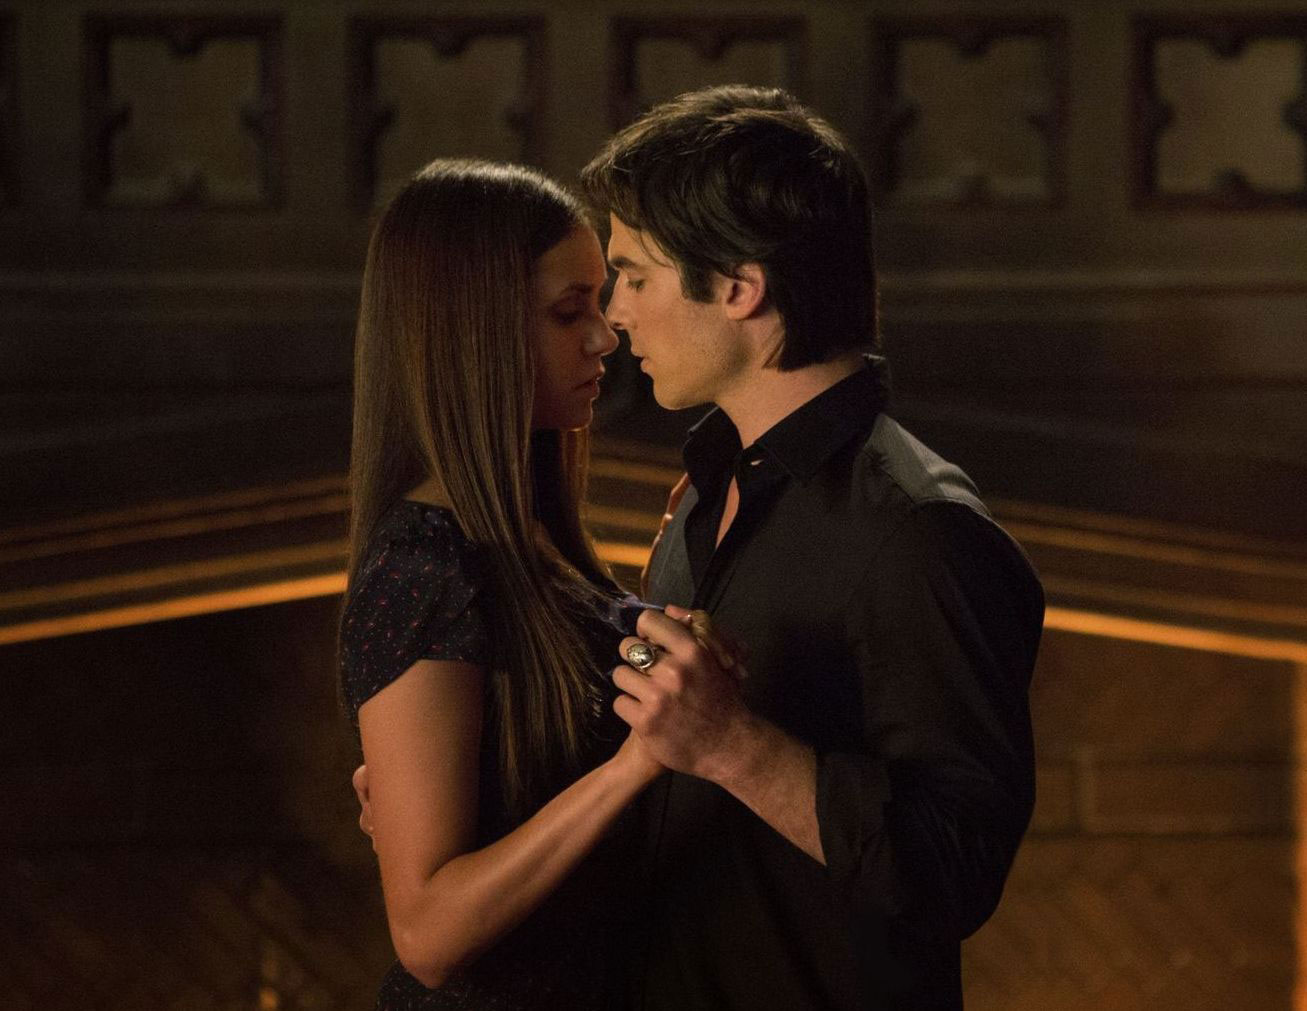 TV Couples Who Dated IRL Damon and Elena The Vampire Diaries - Shortly after Nina Dobrev and Ian Somerhalder met on The Vampire Diaries , they began dating in 2010. However, after three years together, the pair called it quits but their characters stayed together on the series.